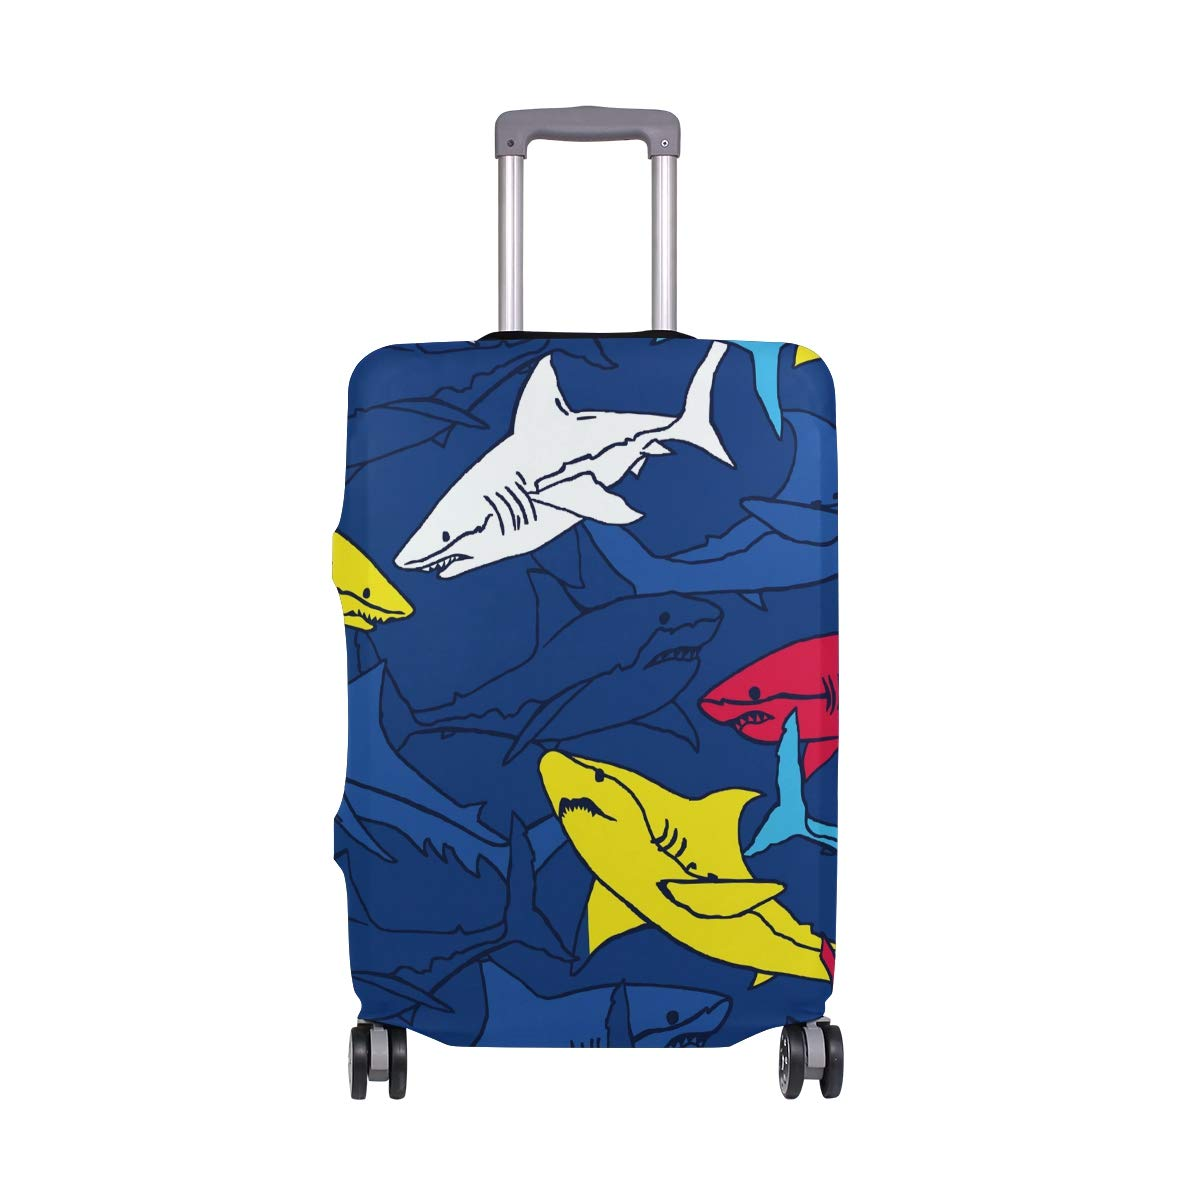 Baggage Covers Blue Navy Yellow Red Sharks Pattern Washable Protective Case